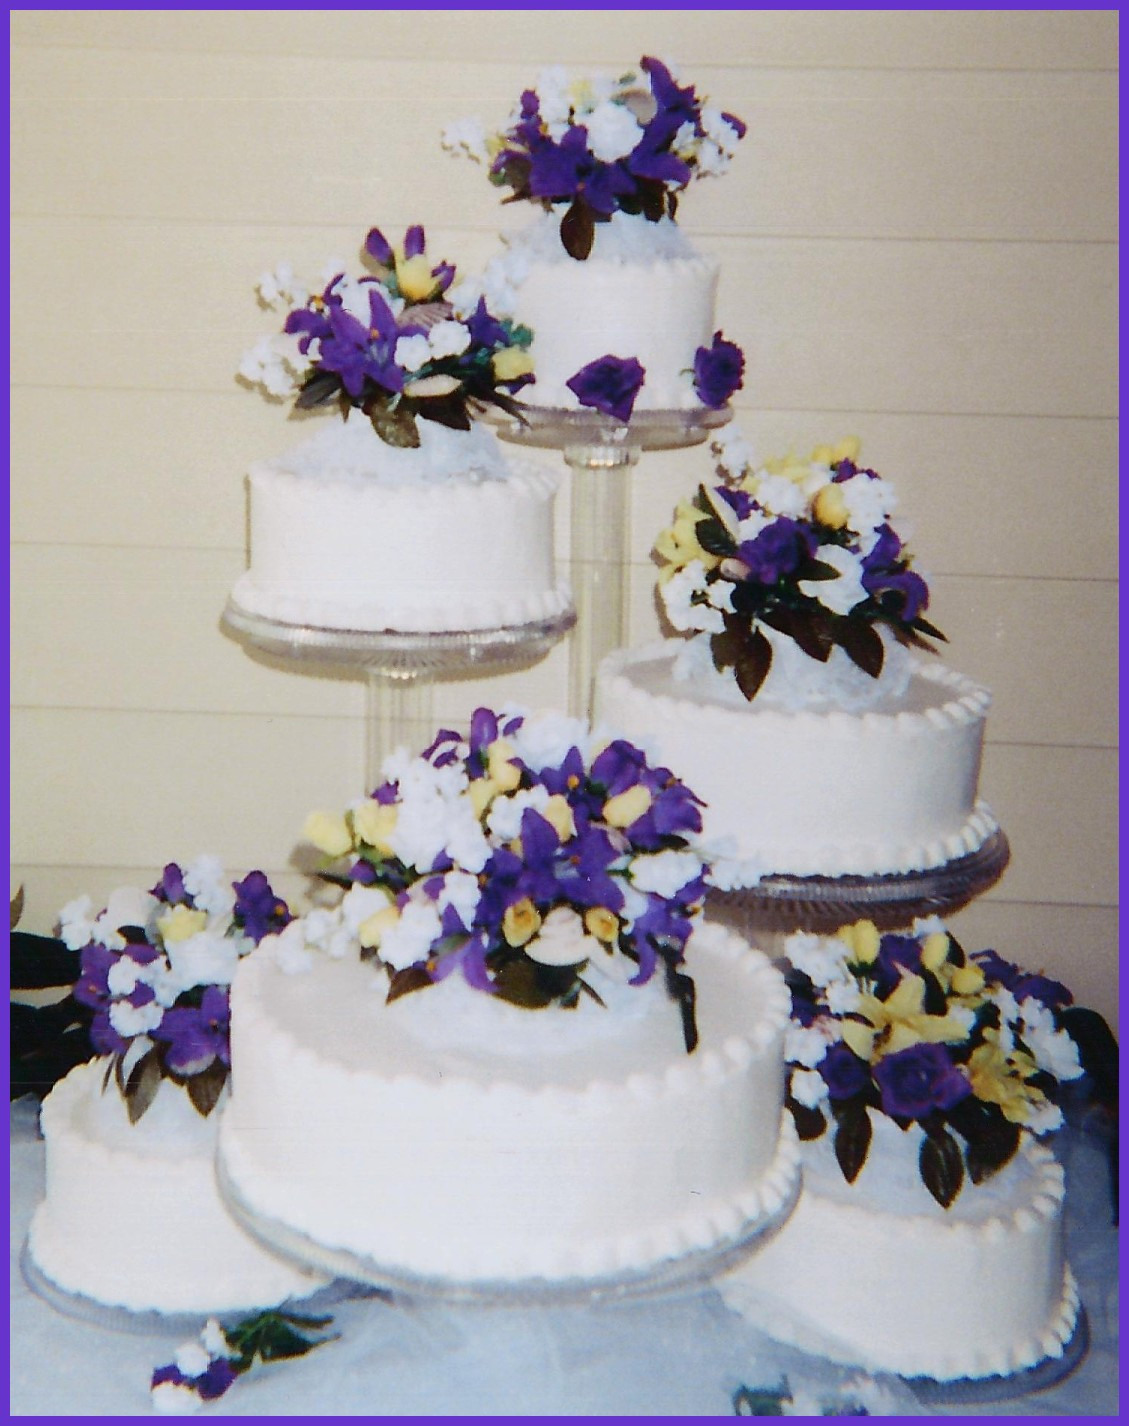 Flowers For Wedding Cakes Artificial  Fearsome Silkwers For Wedding Cakes Artificialwer Cake